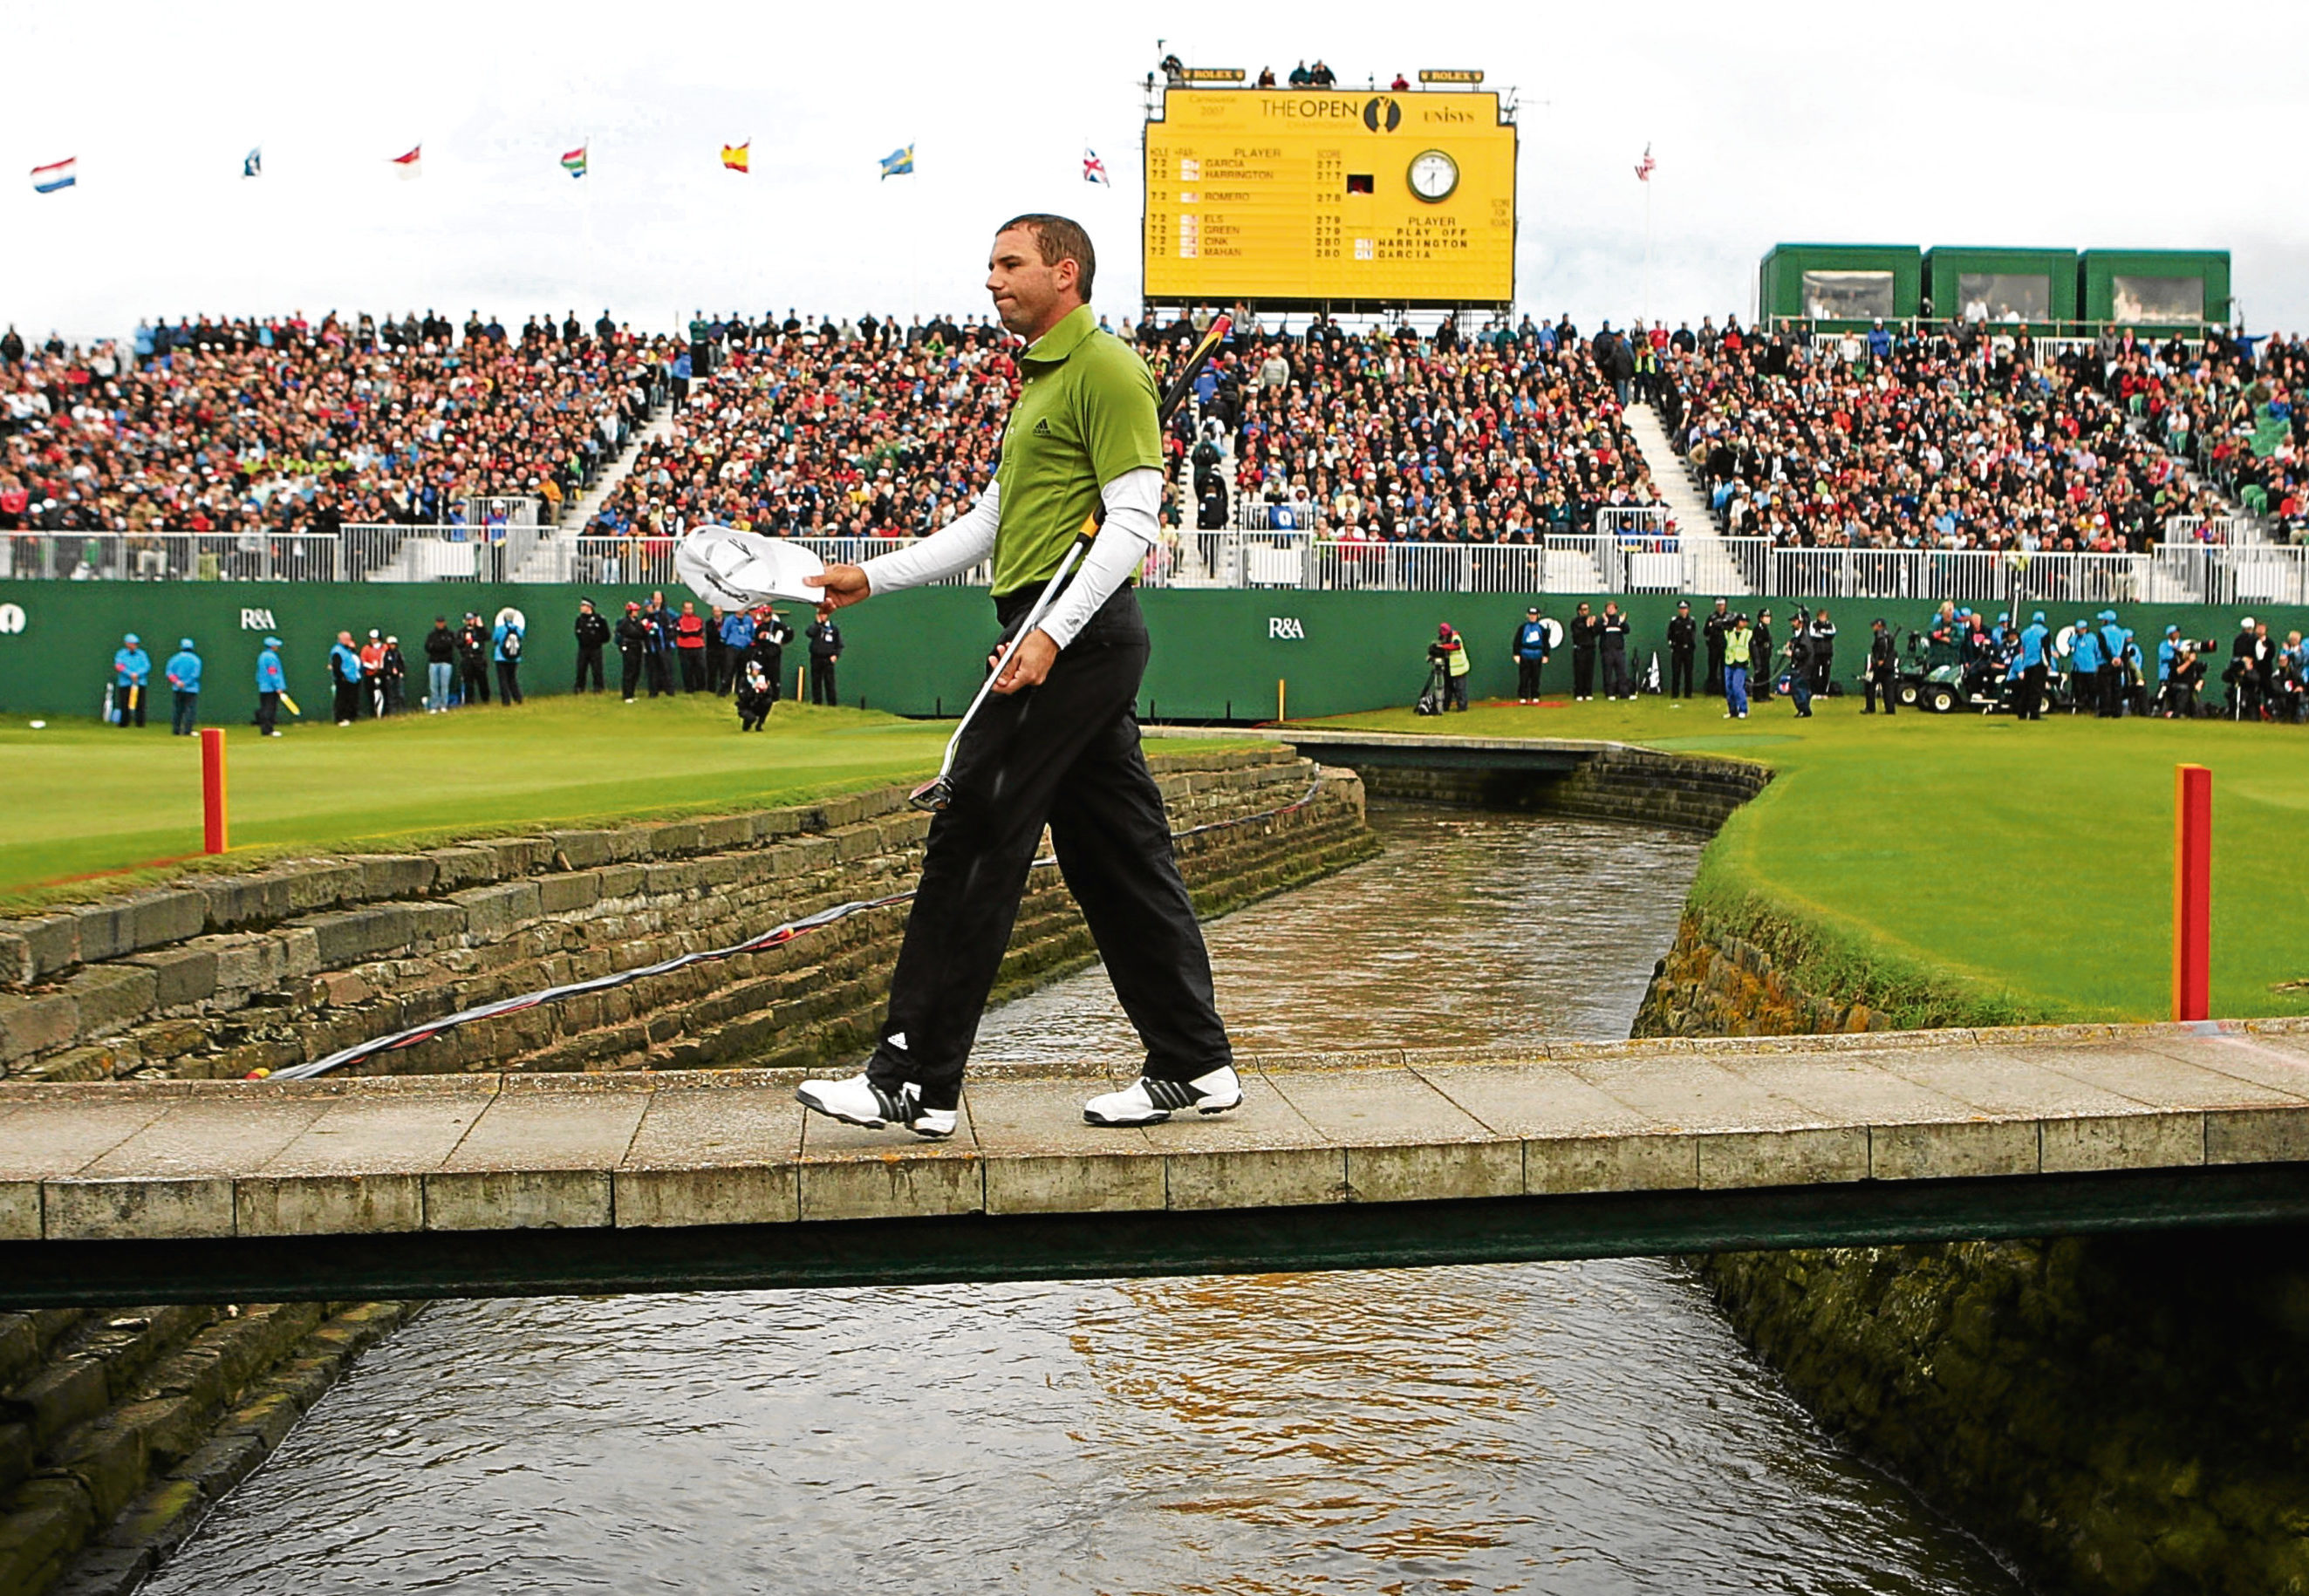 Sergio Garcia crosses the Barry Burn on Carnoustie's 18th during his near-miss at the Open in 2007.